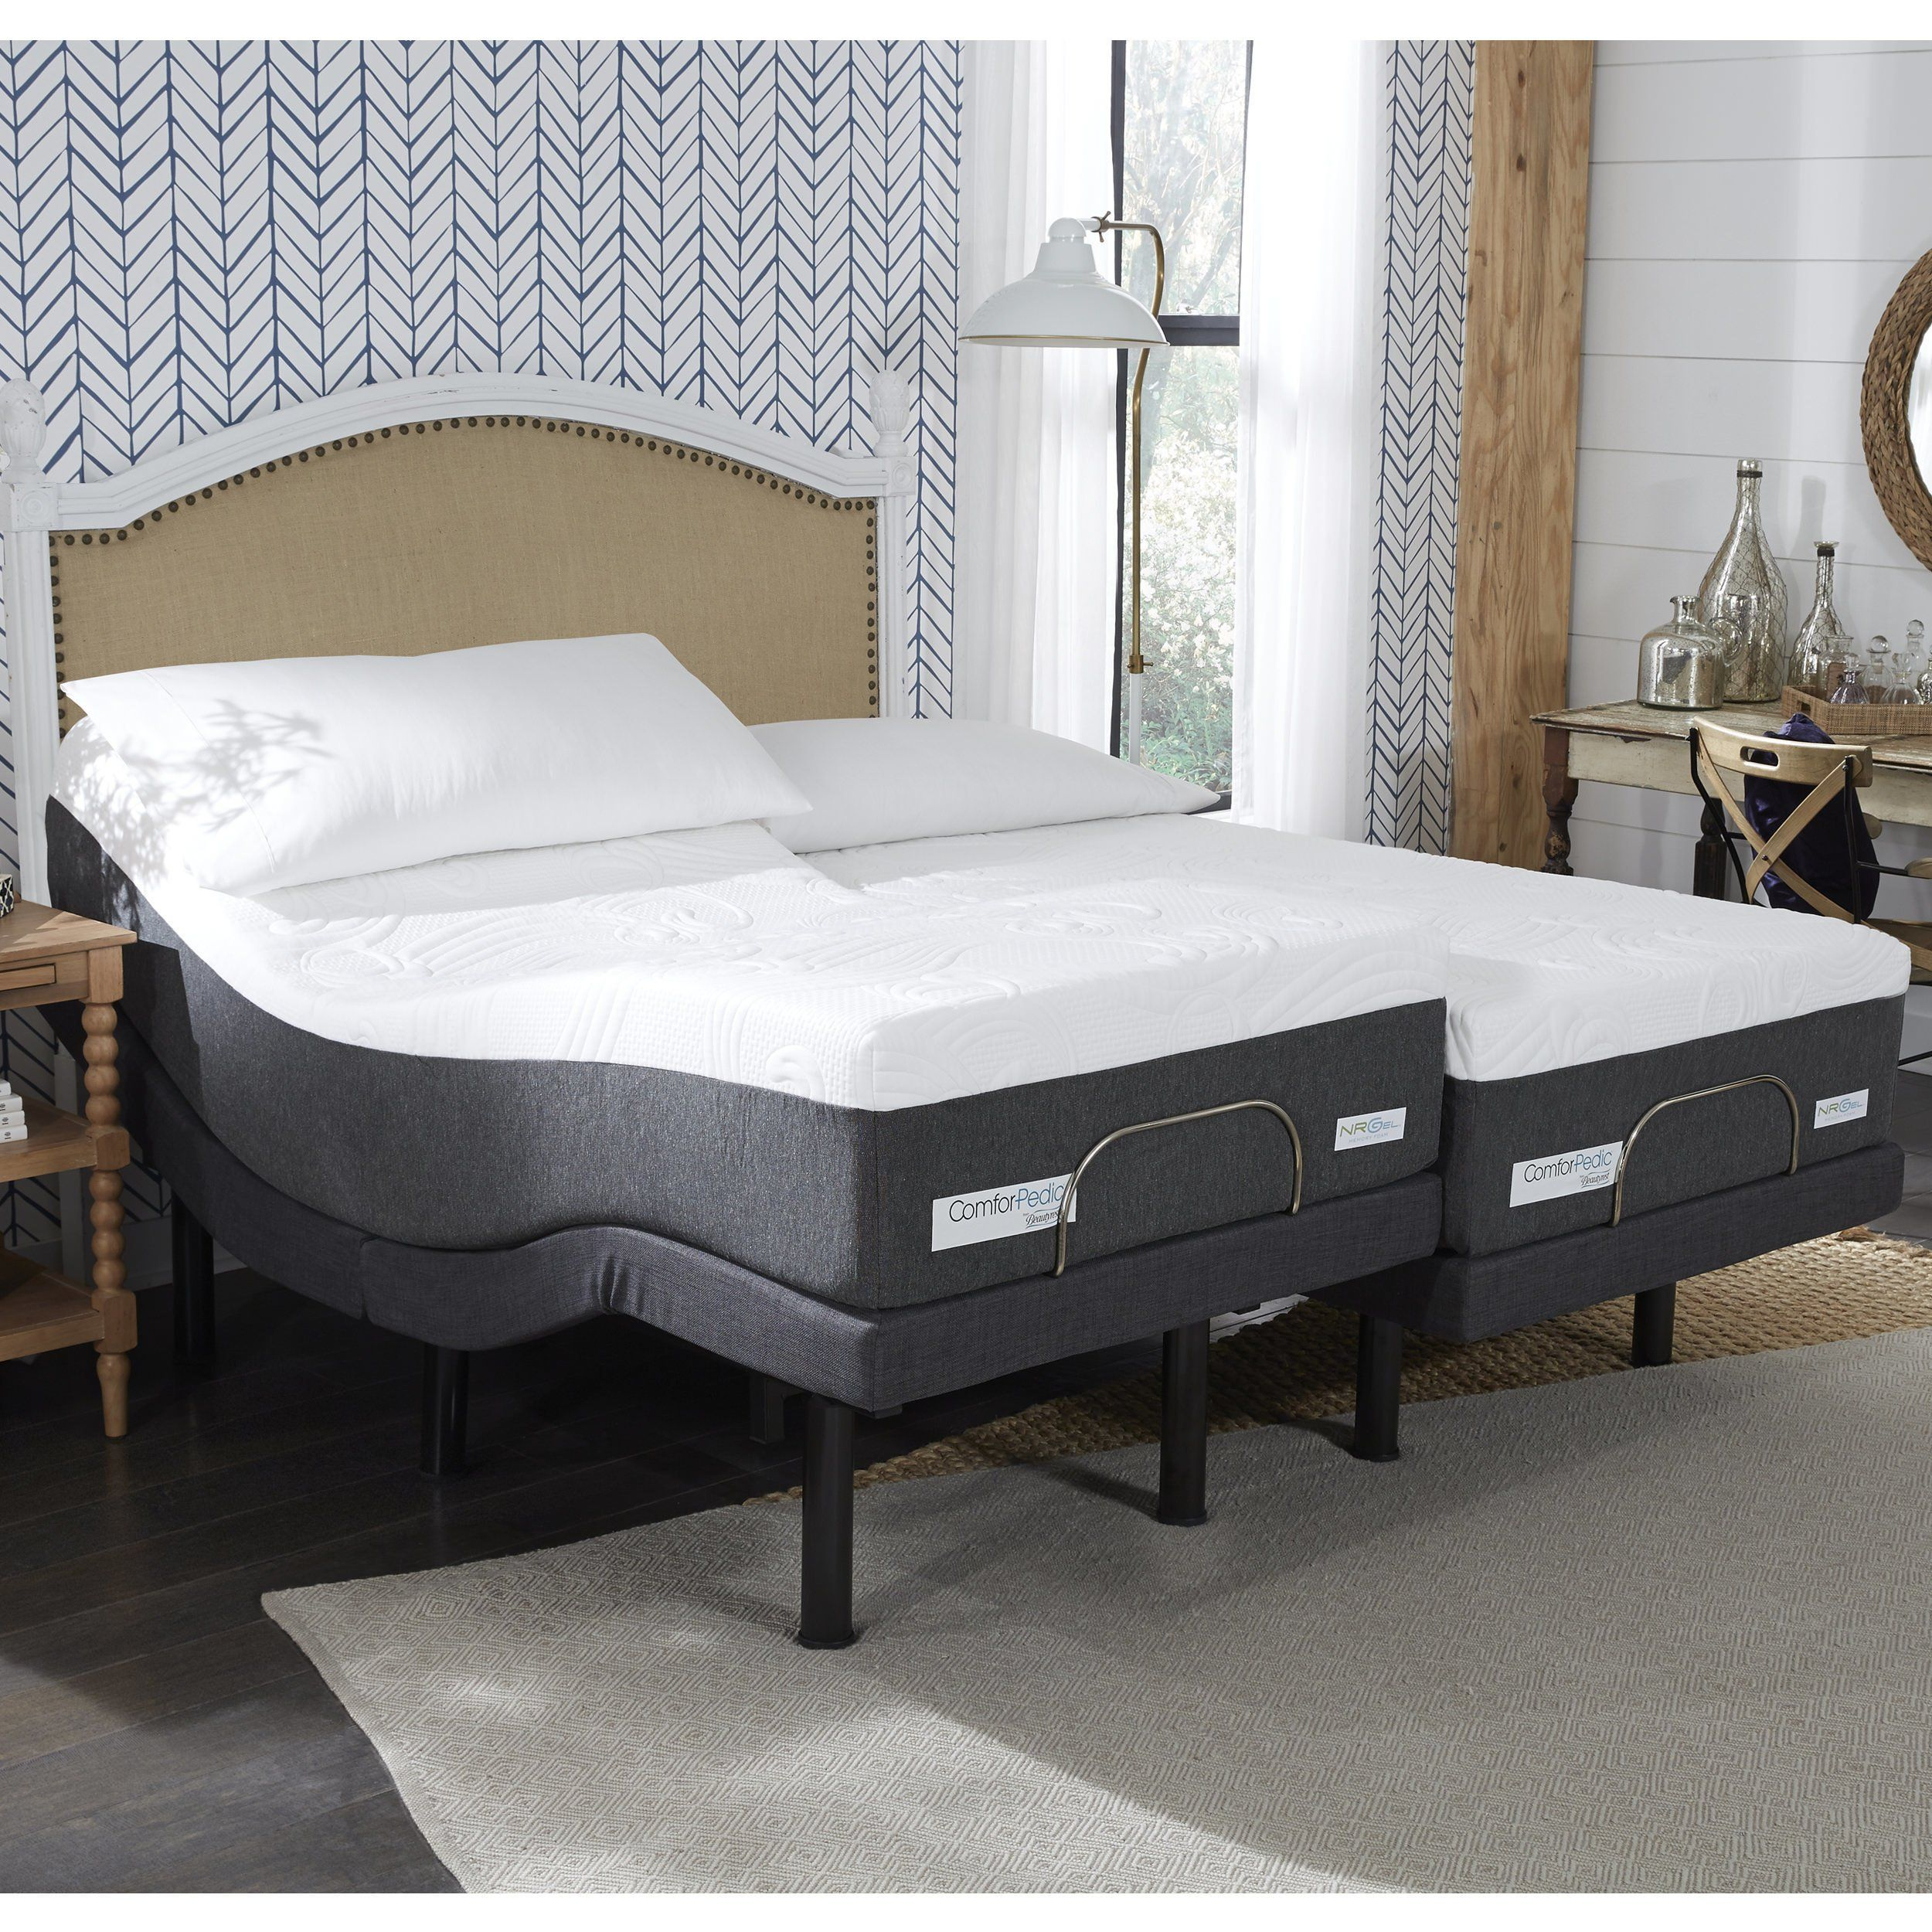 Best Comforpedic From Beautyrest 12 Inch Nrgel Mattress And 400 x 300